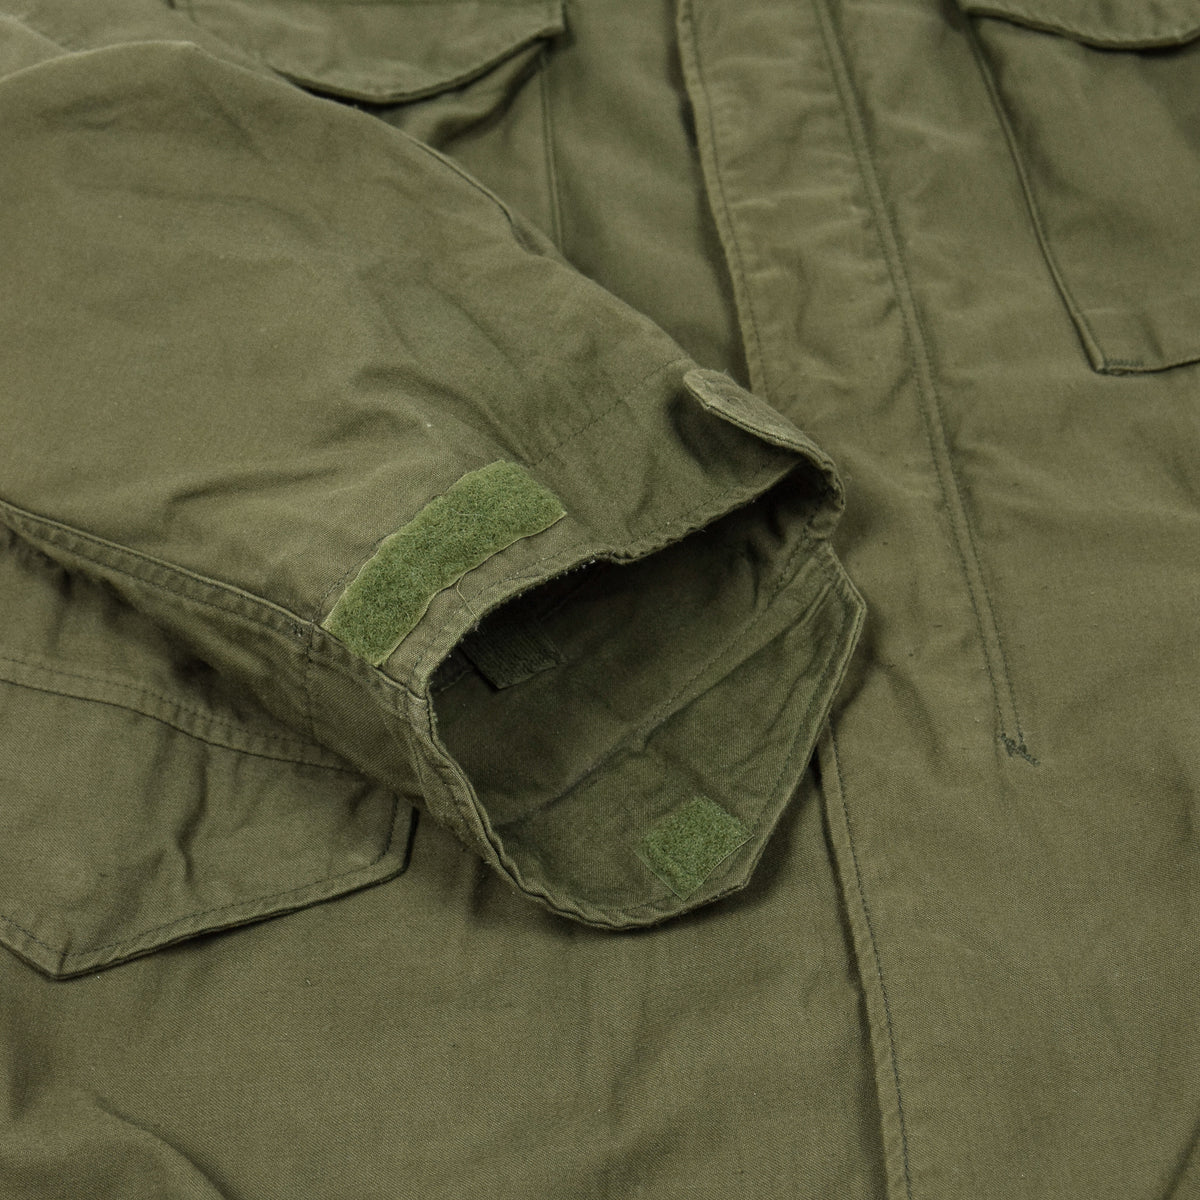 Vintage 80s M-65 Man's Field Cotton Sateen 0G-107 Green US Army Coat M cuff